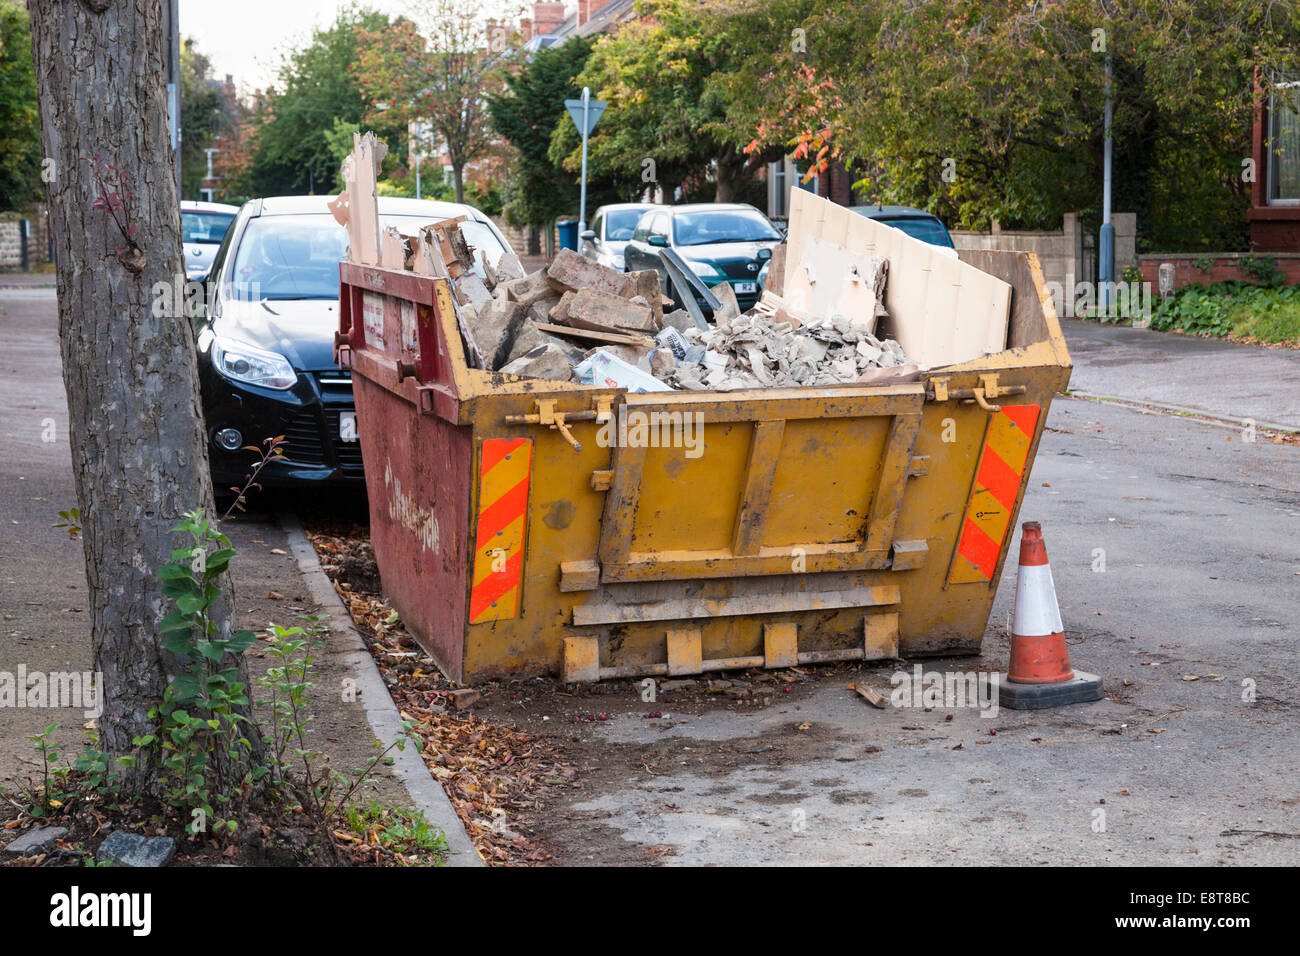 Skip with builder's waste on a residential road in Nottinghamshire, England, UK - Stock Image